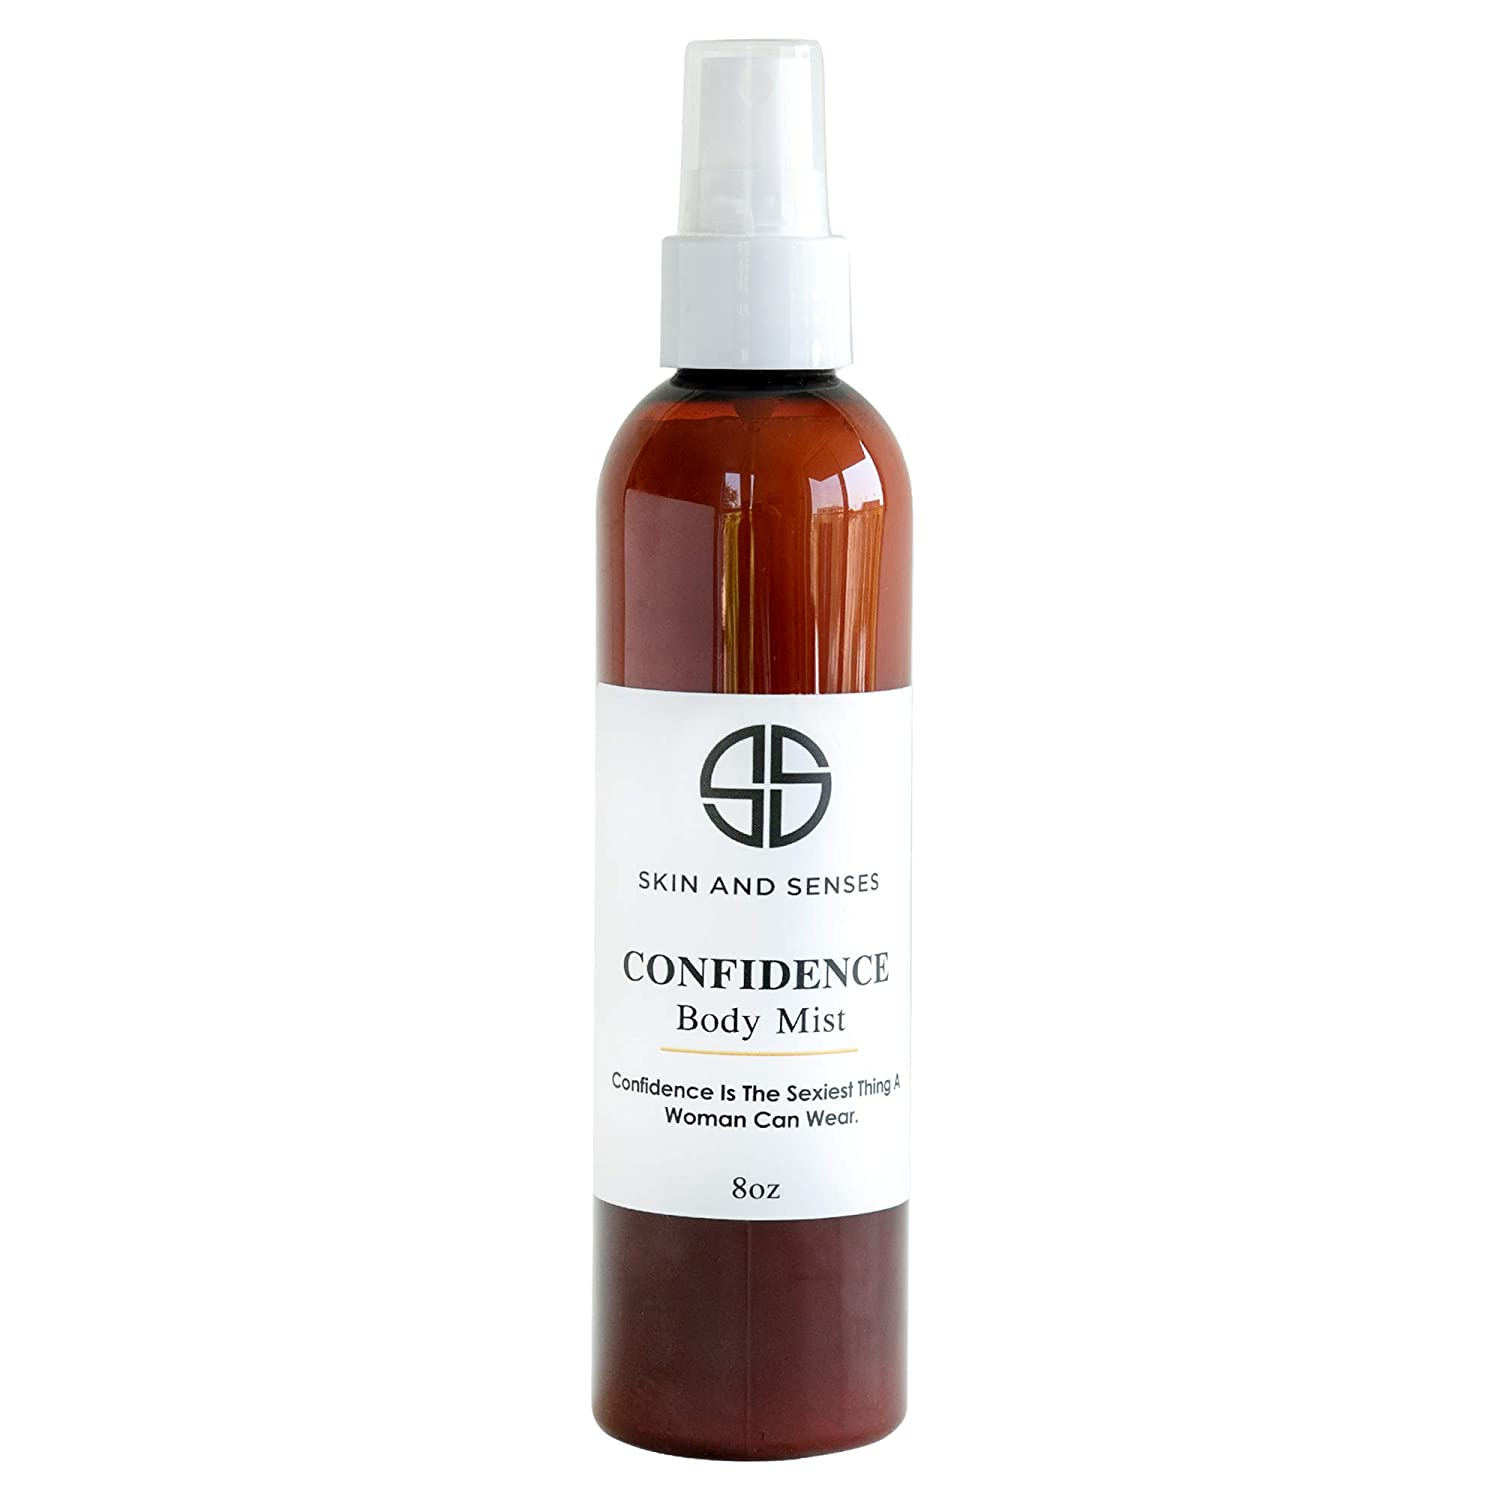 Confidence Body Mist - By Skin And Senses Ultra Hydrating and Effective Skin-Enhancing | Phthalate-Free Fragrance - Luminous Scent